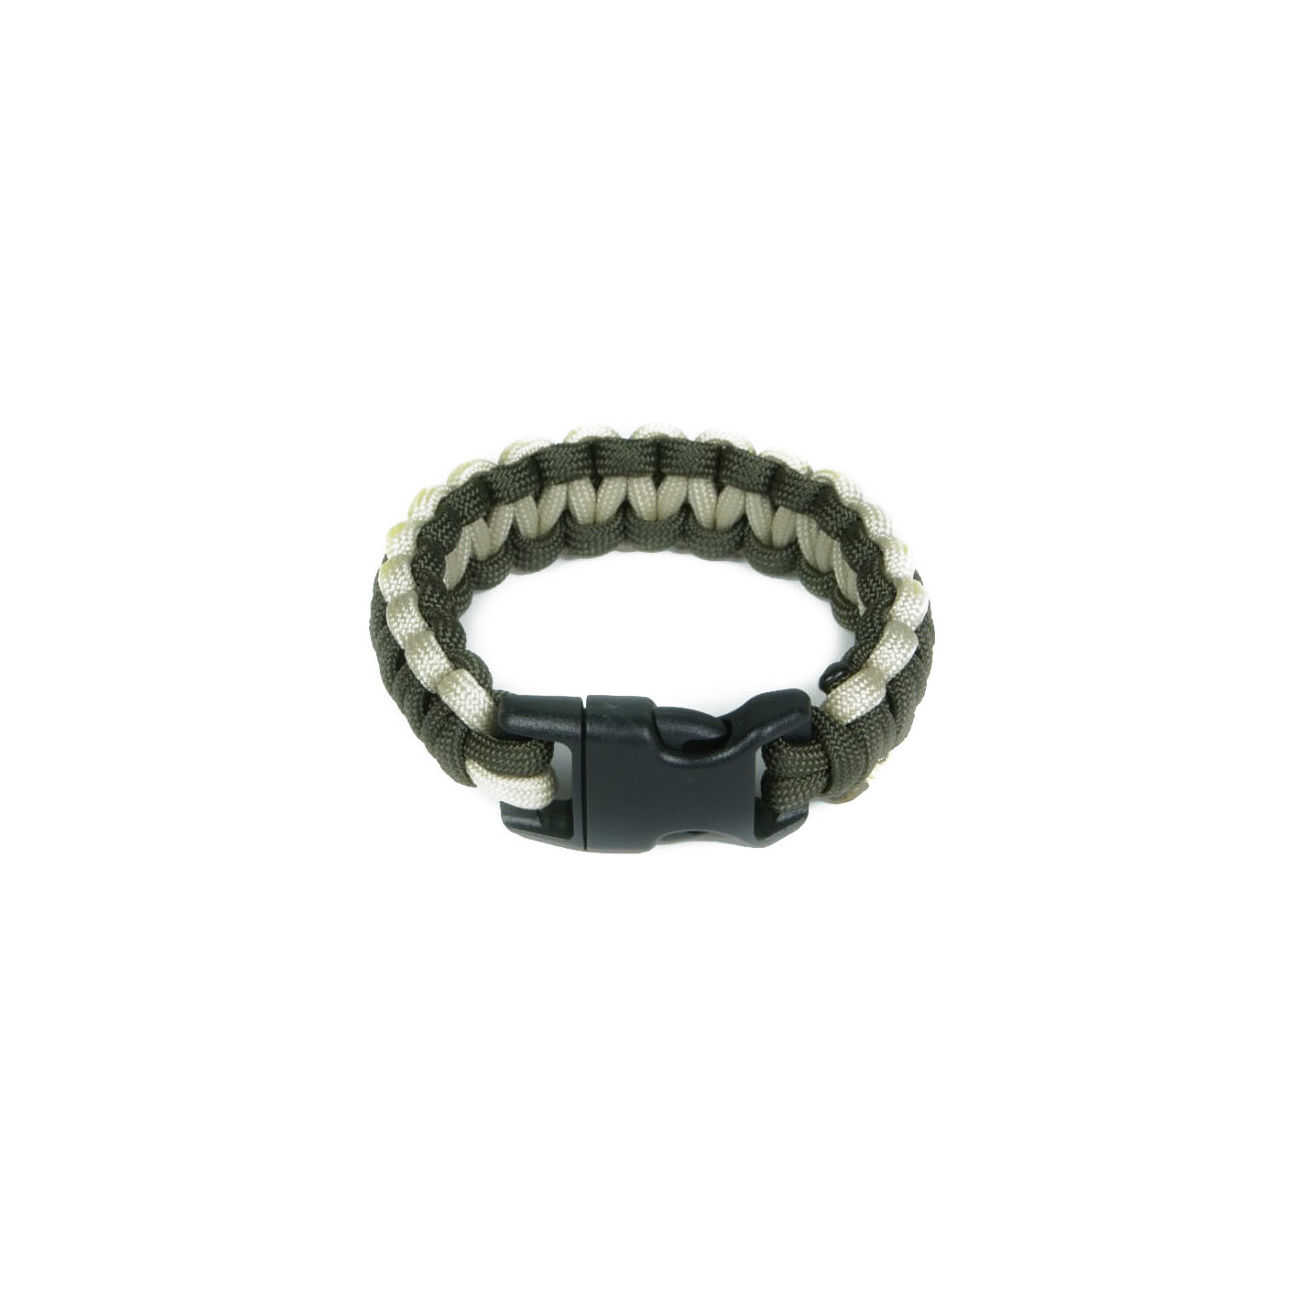 Mil-Spec Cords Cobra Paracord Bracelet oliv / tan 0